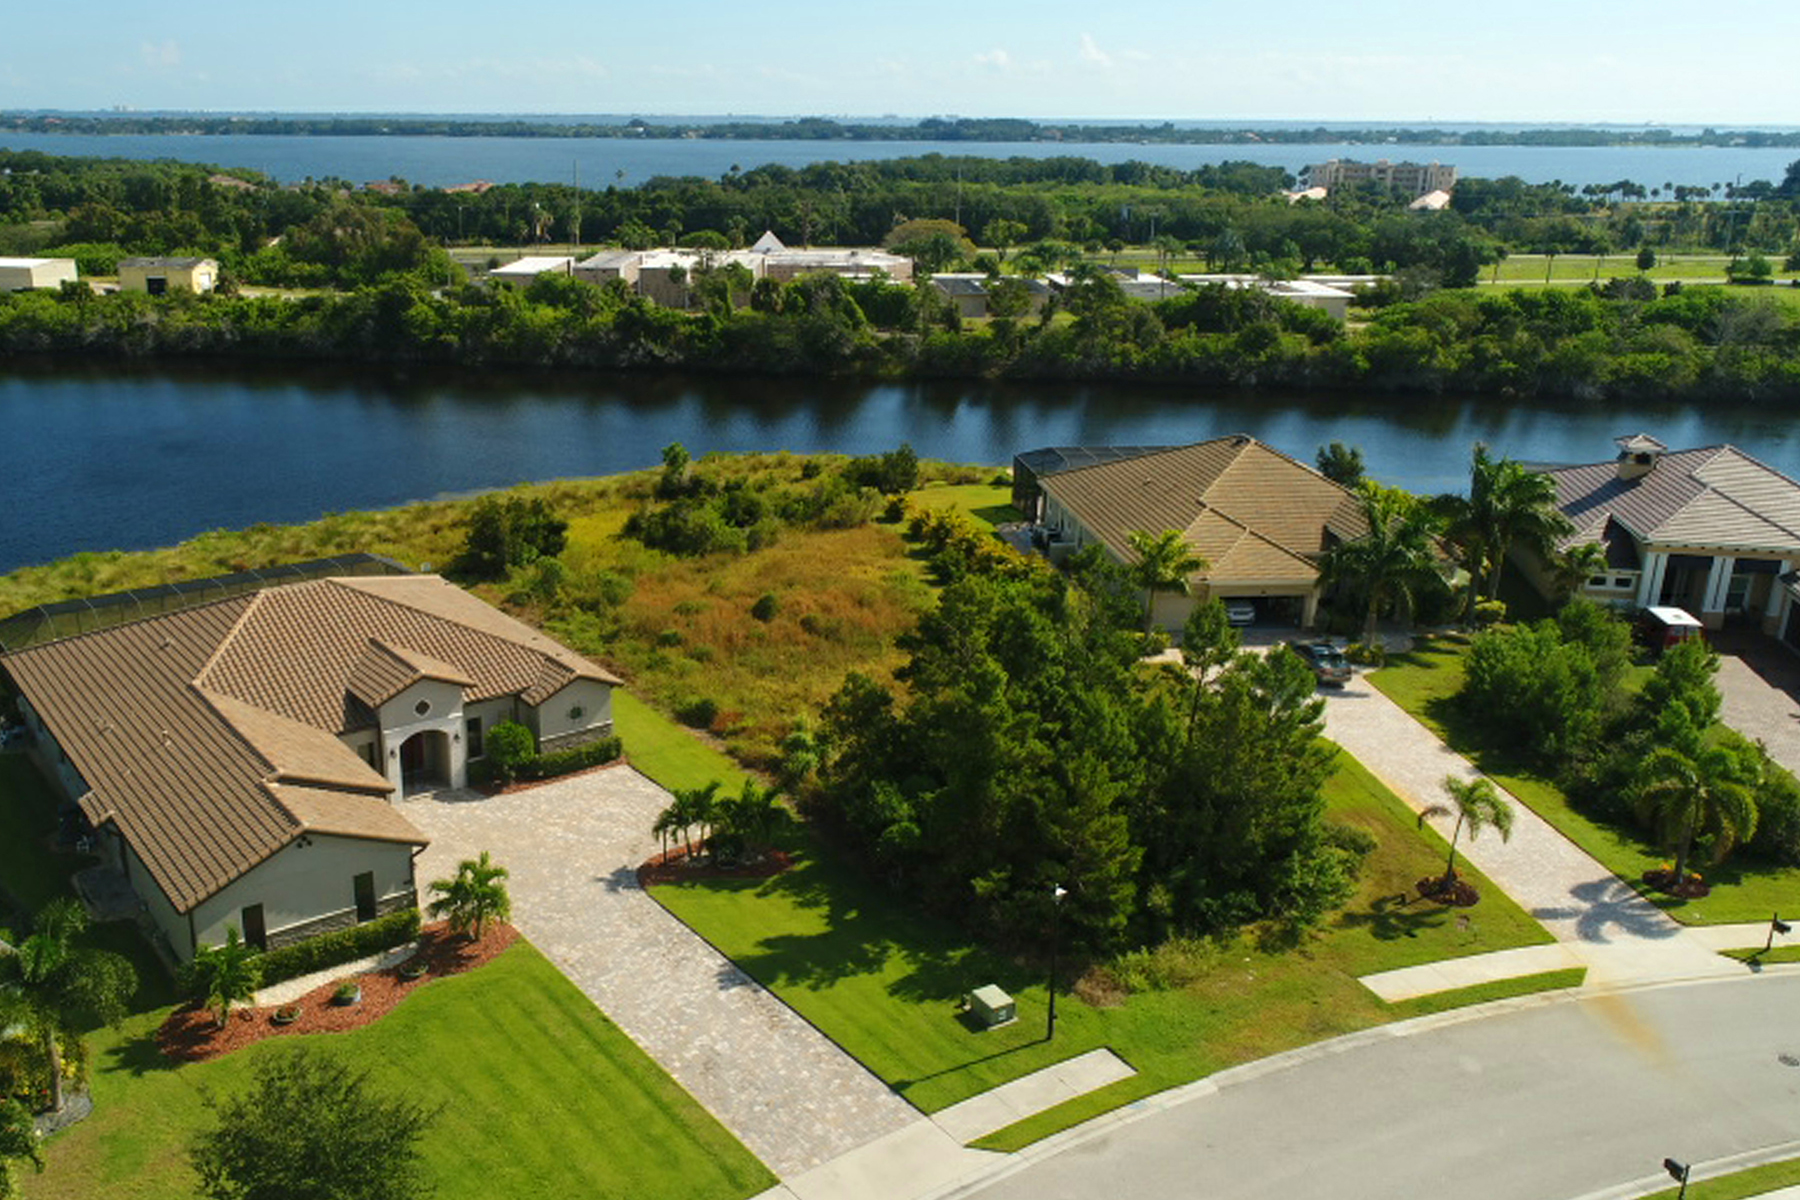 Land for Sale at MELBOURNE 1363 Alto Vista Dr Dr Melbourne, Florida 32940 United States